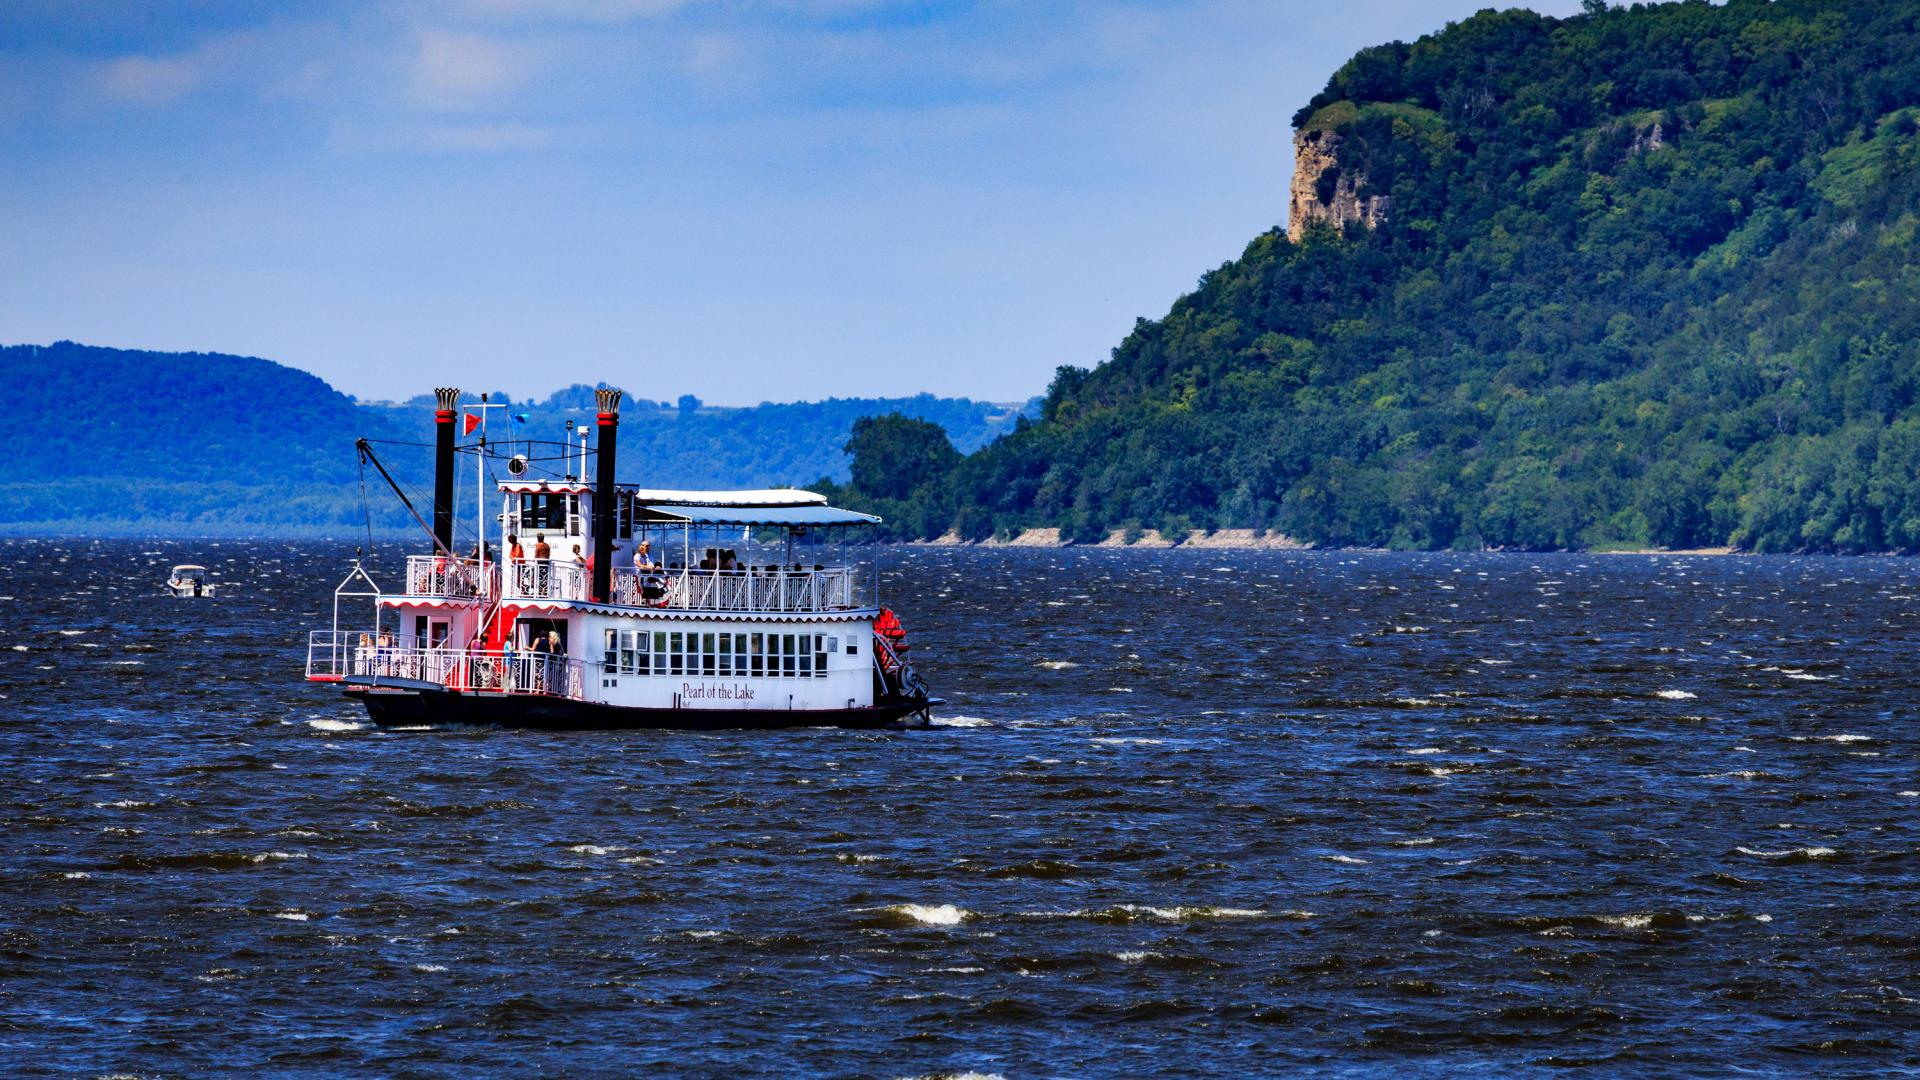 Paddlewheel boat on Lake Pepin